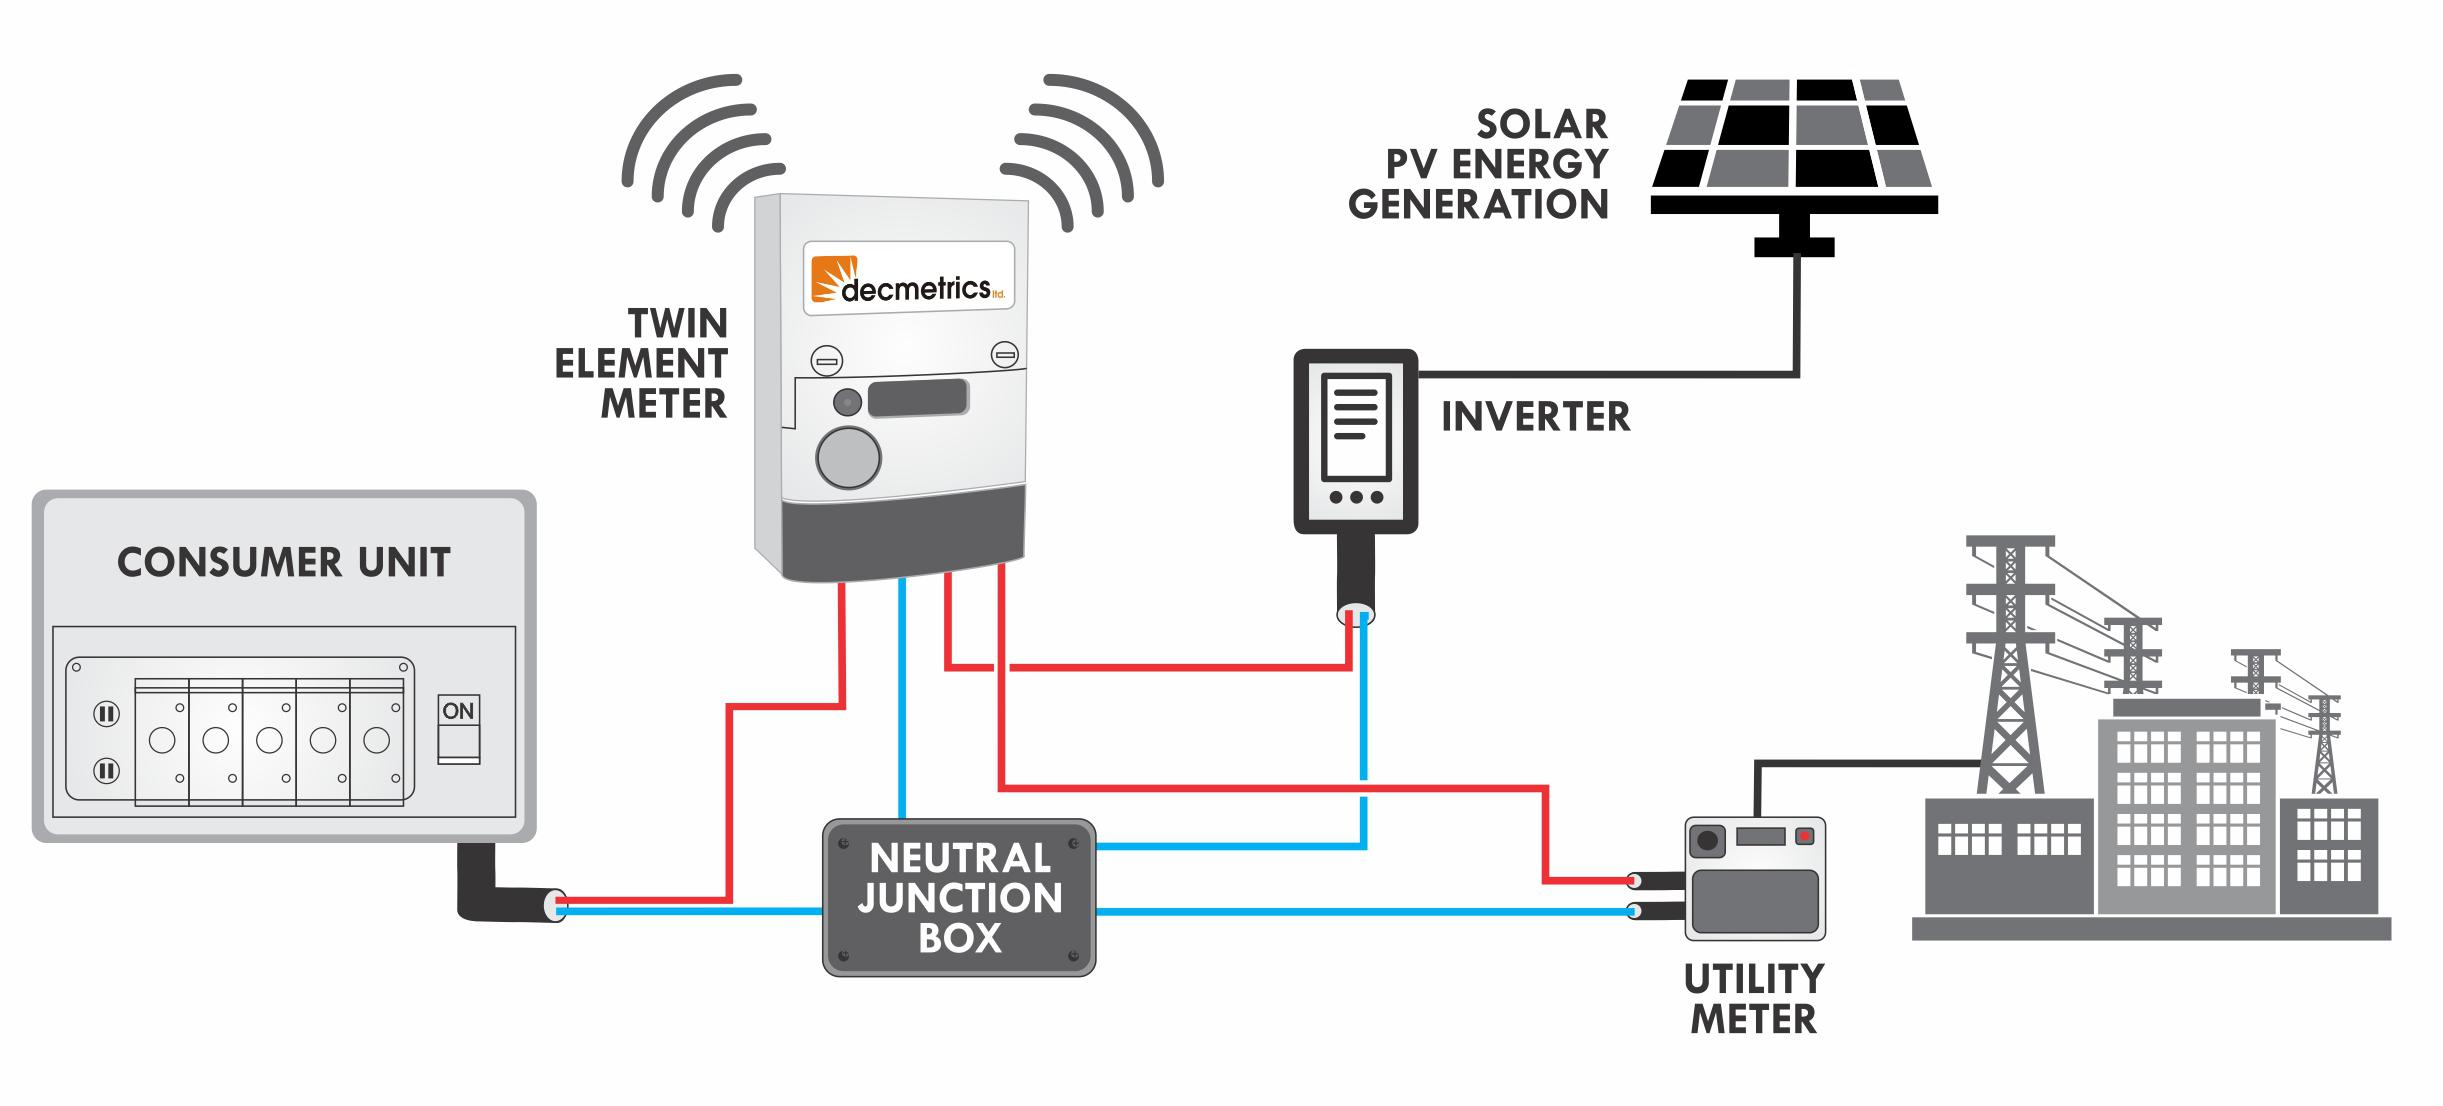 An Ideal Metering Solution For Power Purchase Agreements